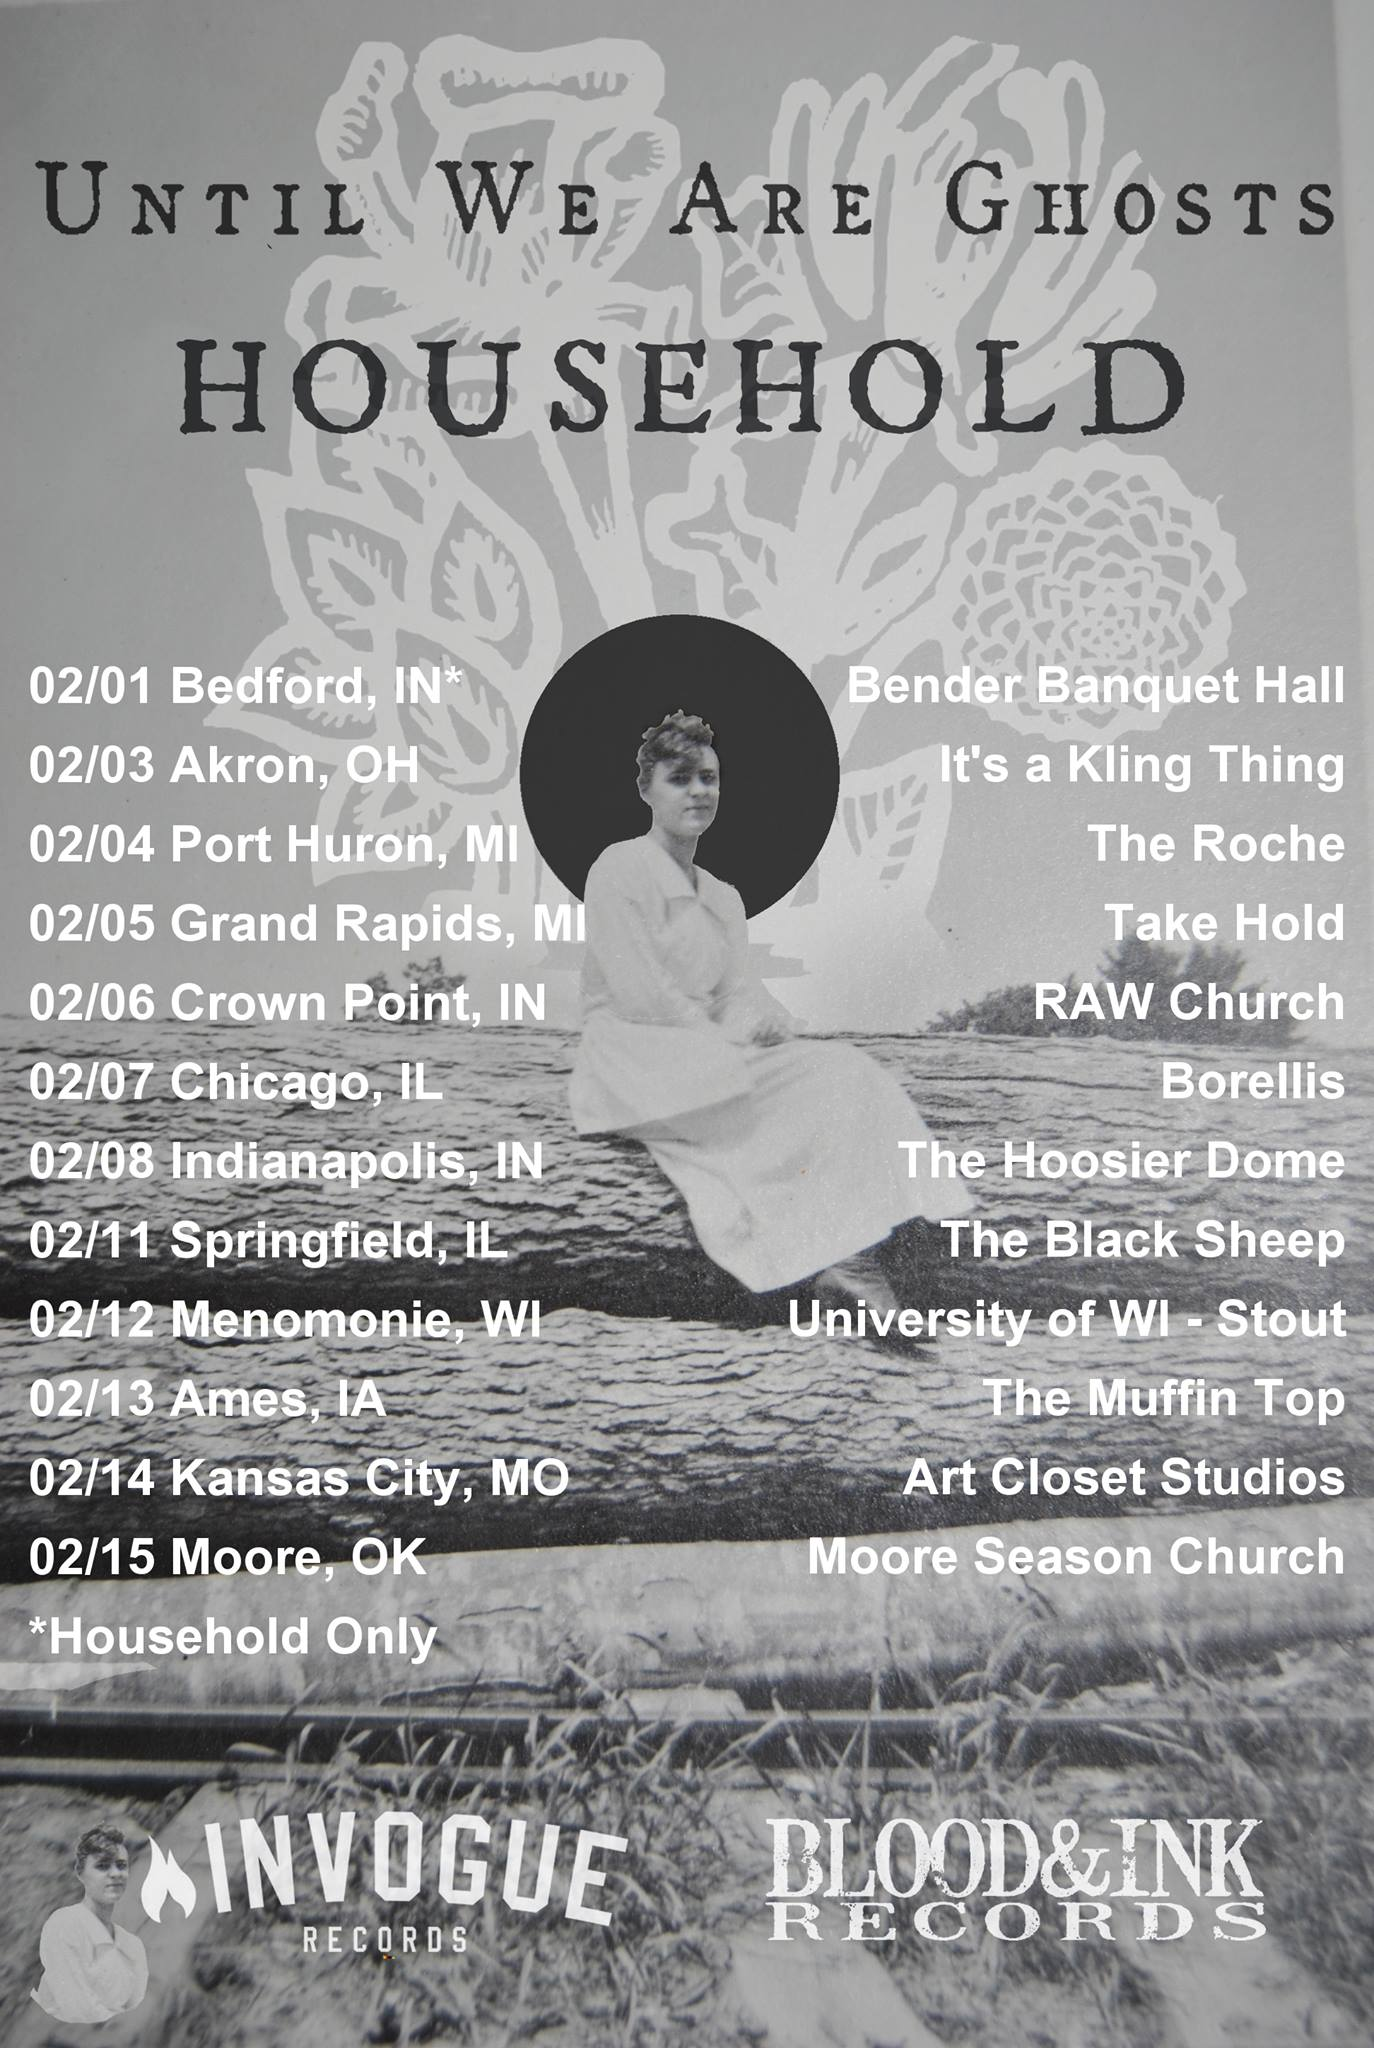 Household February tour 2015